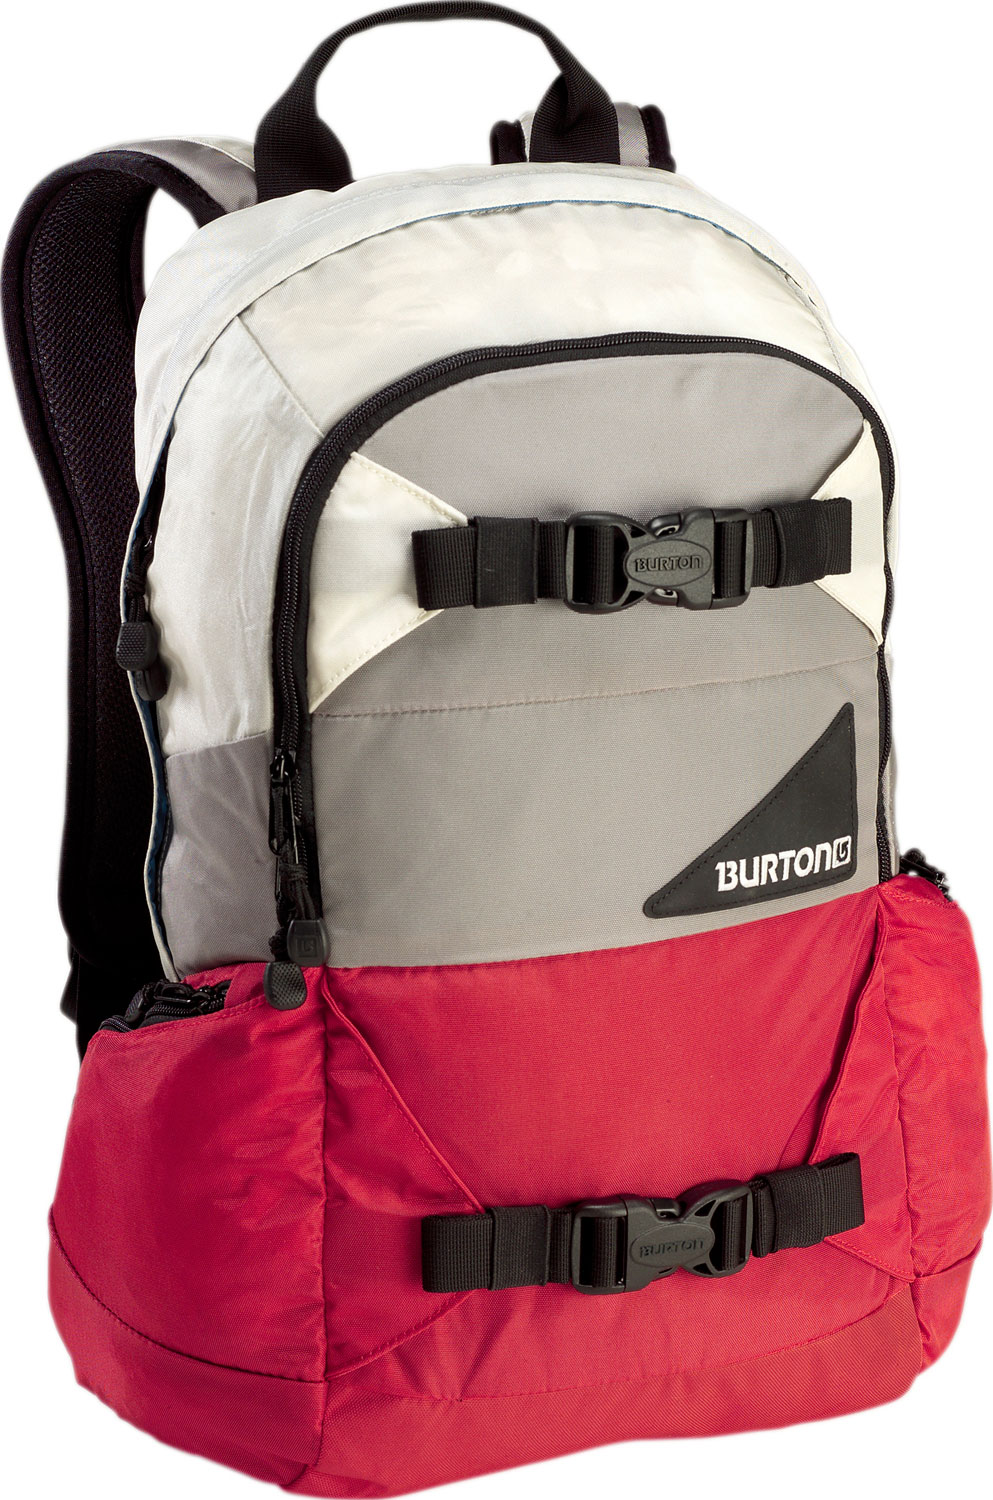 Camp and Hike Versatile, dependable, and durable,ready for any on or off-snow adventure. Key Features of the Burton Day Hiker 20L Backpack: 20L [19in x 11in x 8in] [48cm x 28cm x 20cm] Weight: 1.9 lbs [0.86 kg] Fabrication: 420D High-Density Nylon / 600D Polyester Cush Ergonomic Shoulder Harness and Ergonomic Back Panel Vertical Board Carry Easy Access Internal Shovel Storage Pocket Fleece-Lined Goggle / Sound Pocket Hydration Compatible Waist Strap - $41.95